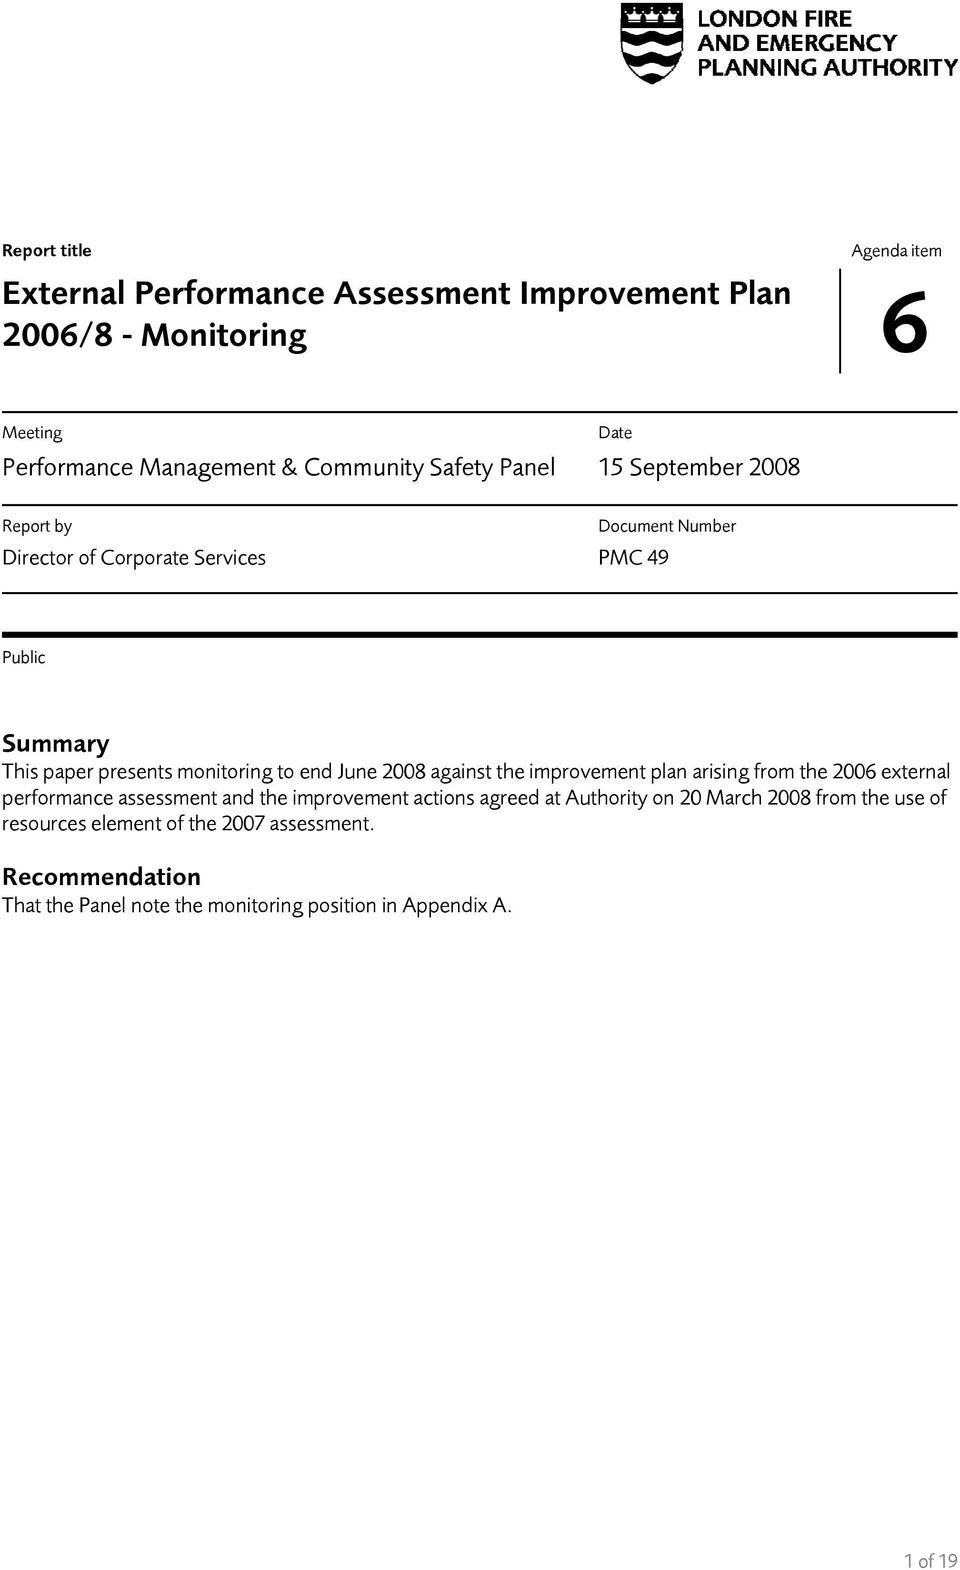 June 2008 against the improvement plan arising from the 2006 external performance assessment and the improvement actions agreed at Authority on 20